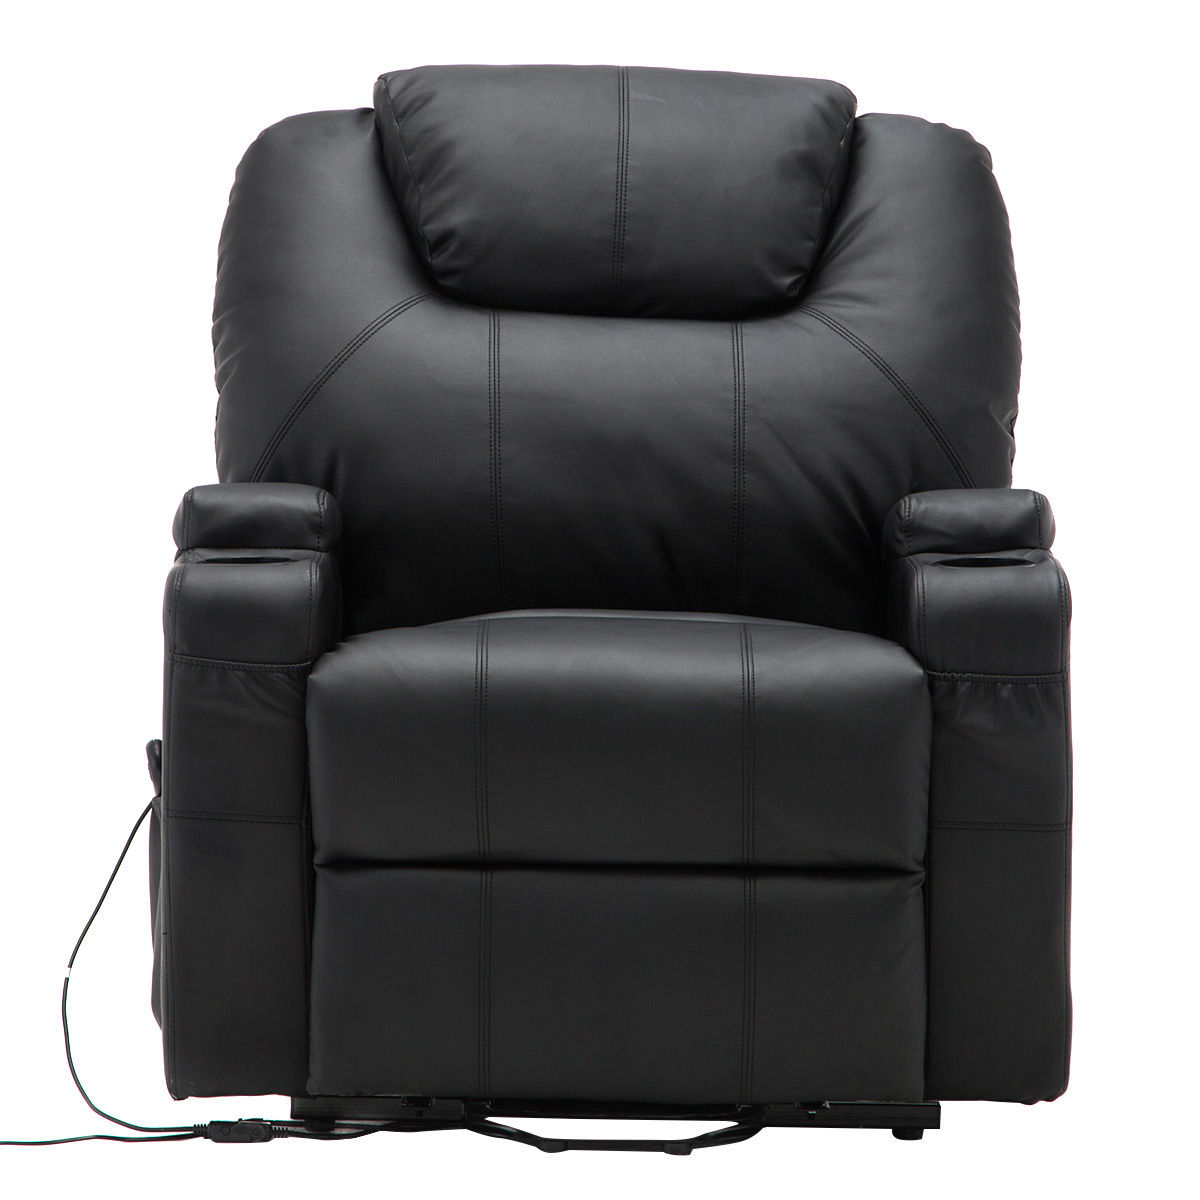 Goplus PU Leather Heated Massage Sofa Lounge Electric Lift Power Recliner  Chair W/ Remote Control